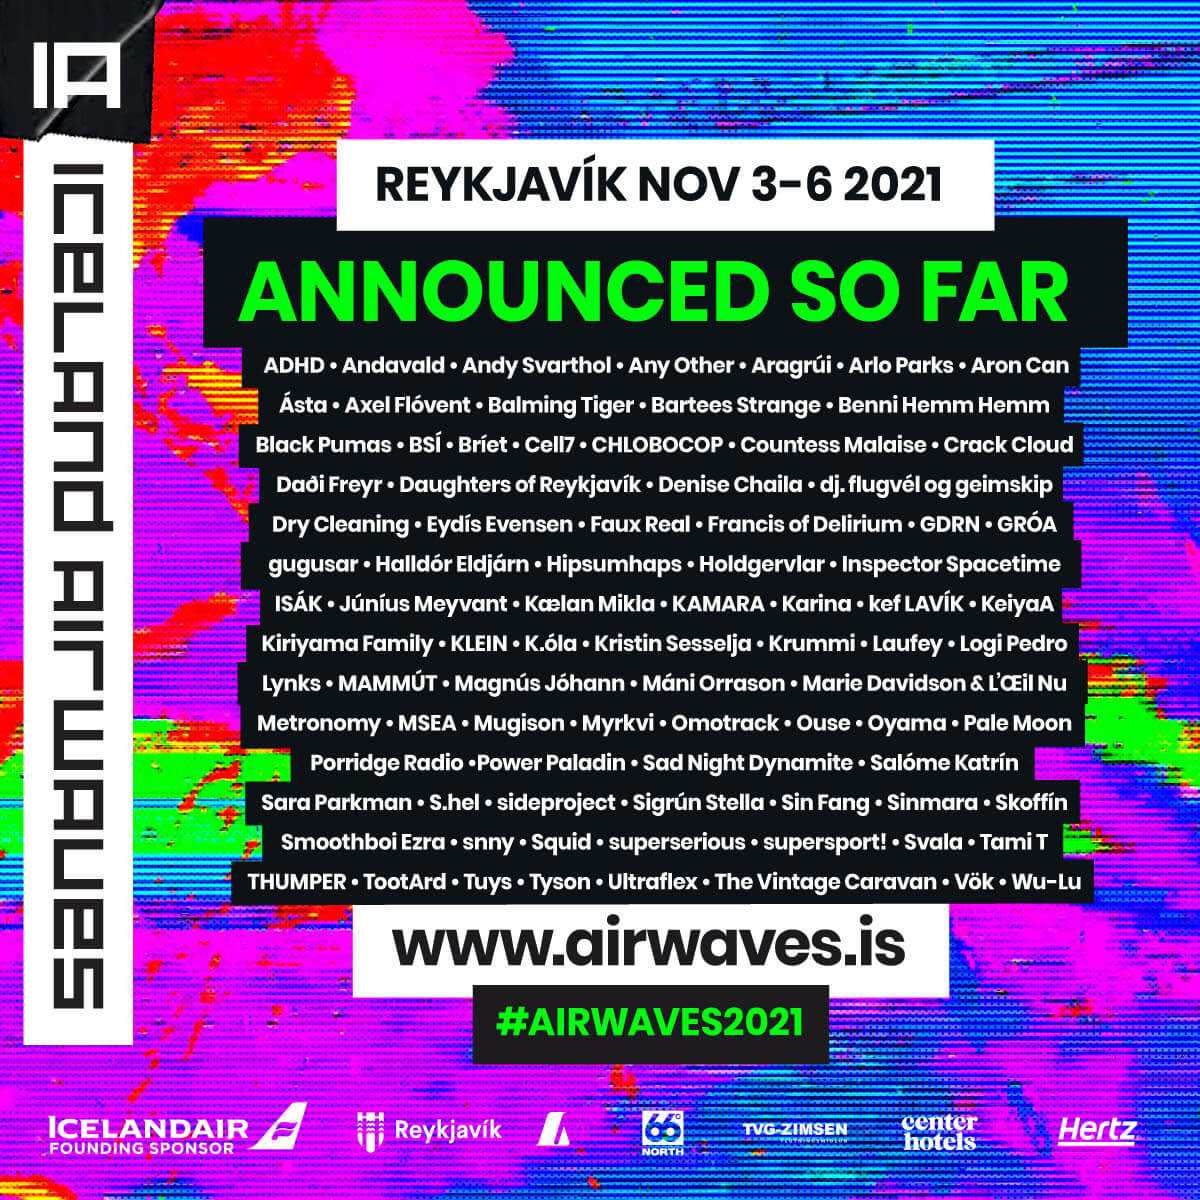 2021 edition of Iceland Airwaves, returns to downtown Reykjavík this November 3-6, 2021. Today, one of the finest curated music